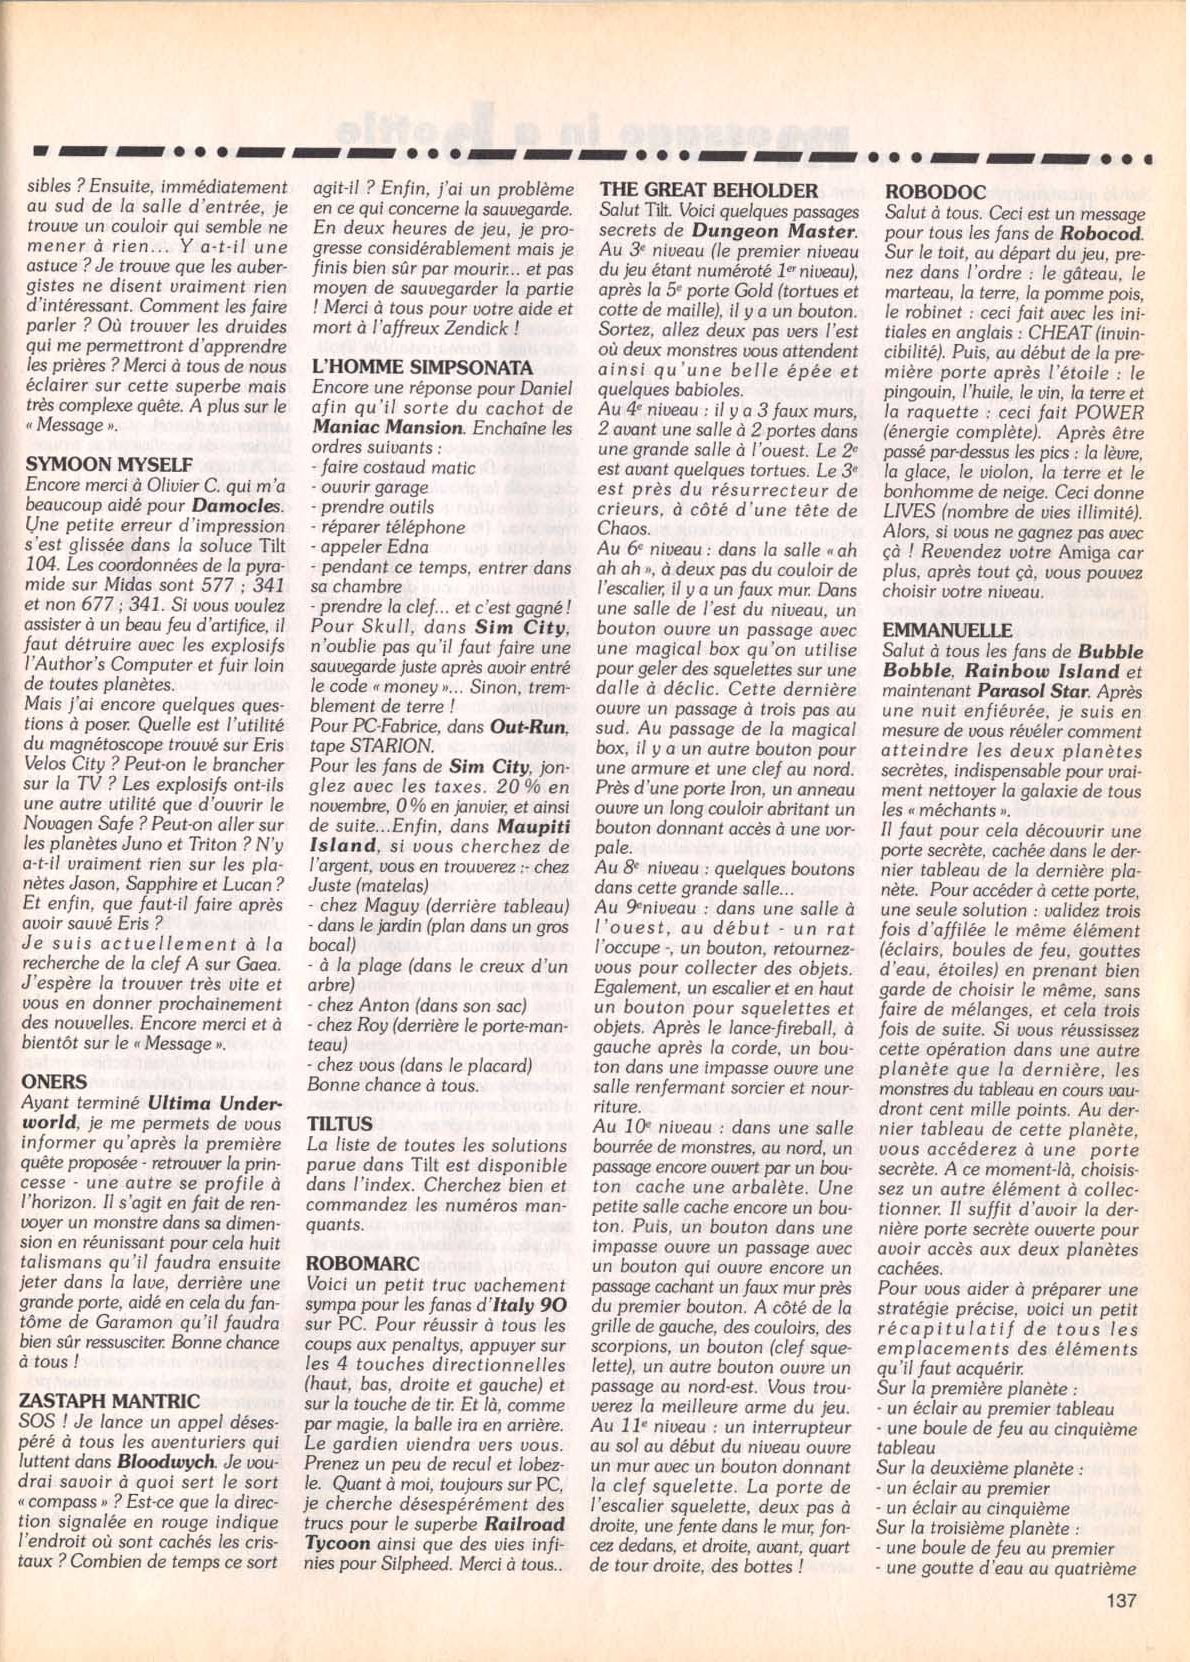 Dungeon Master Hints published in French magazine 'Tilt', Issue #105, September 1992, Page 137